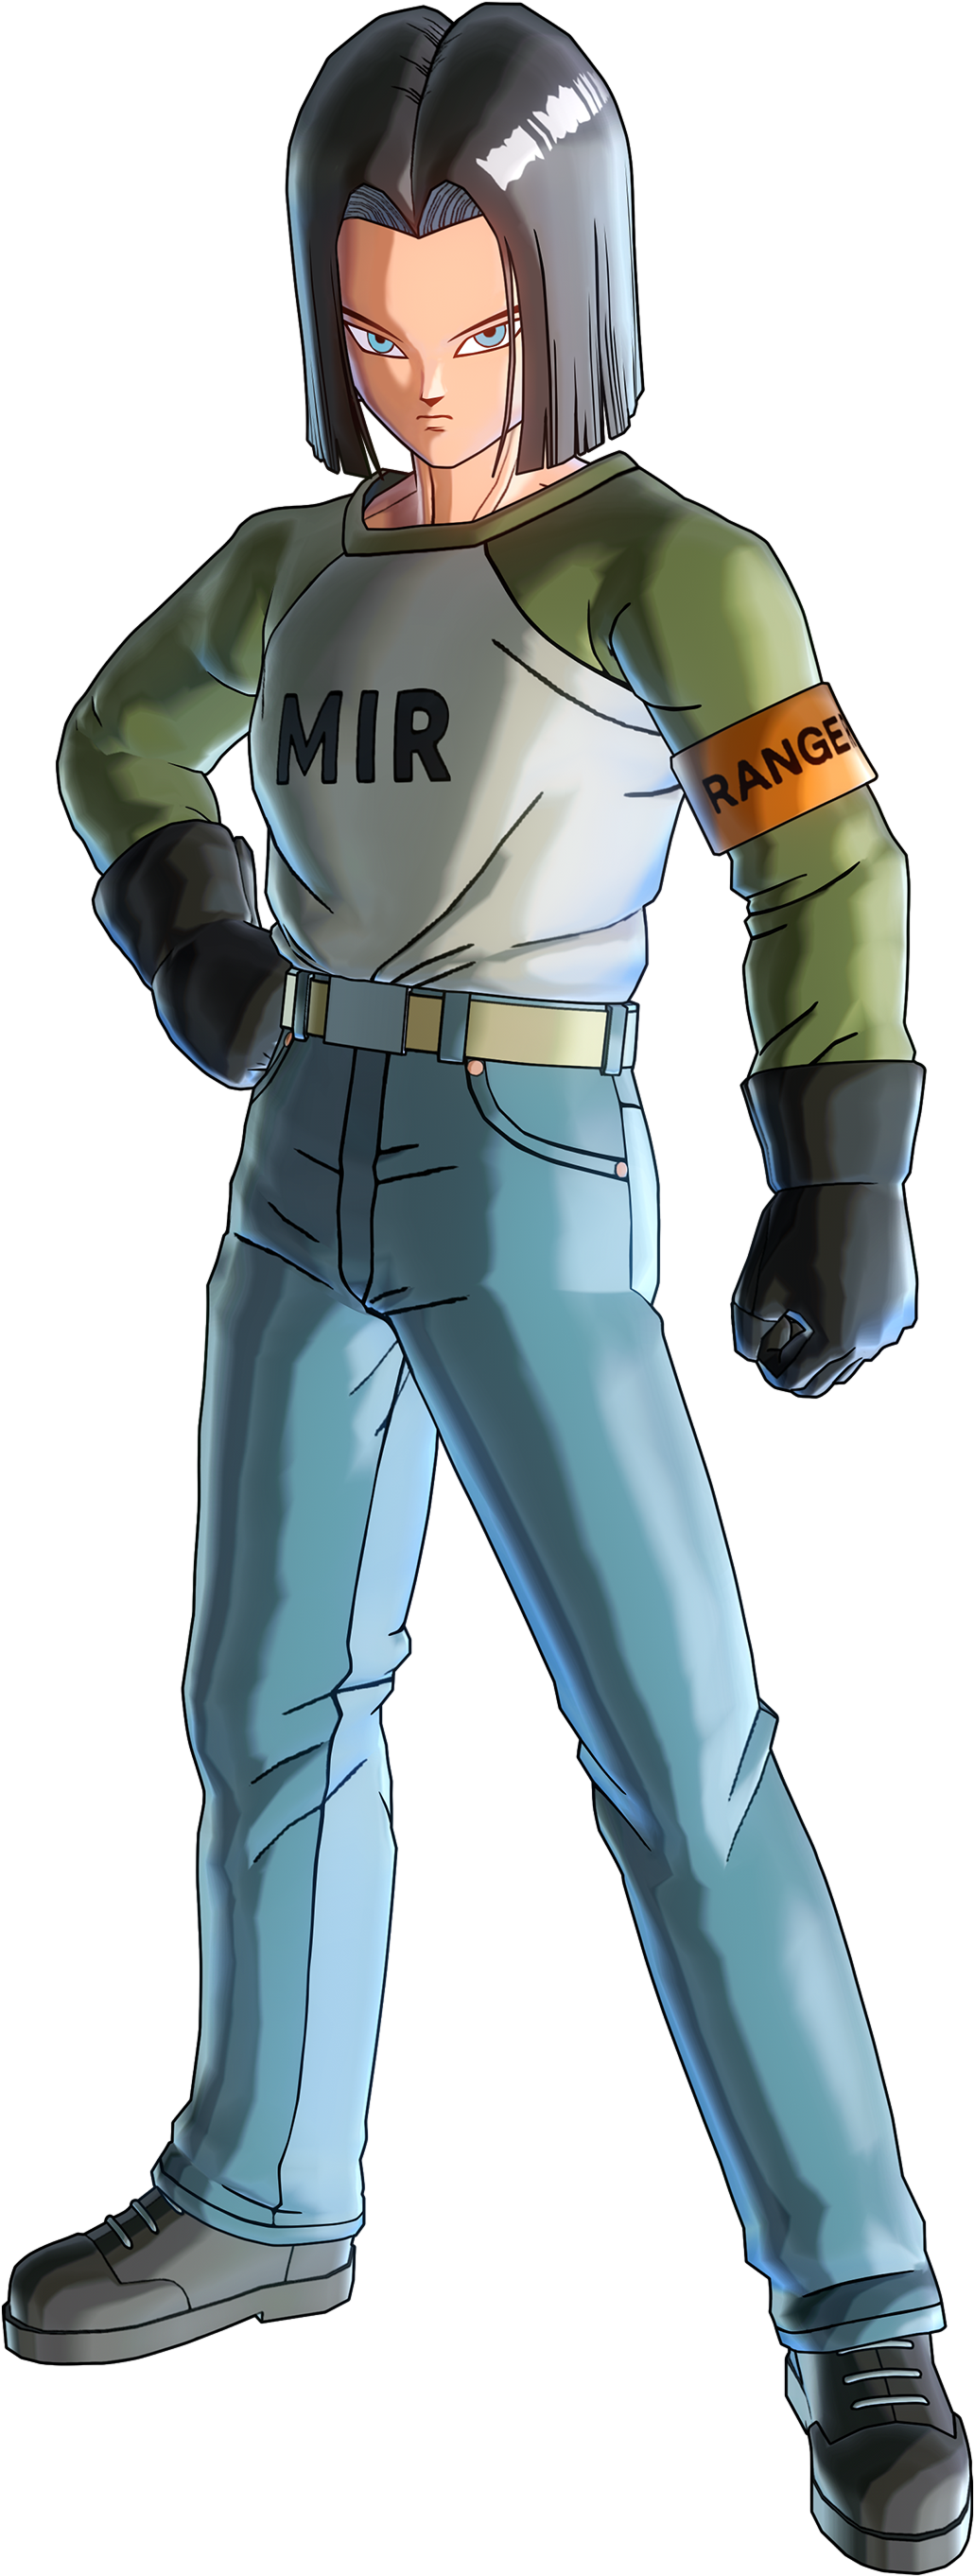 Ranger Android 17 from Dragon Ball Super Render (Dragon Ball Xenoverse 2).png